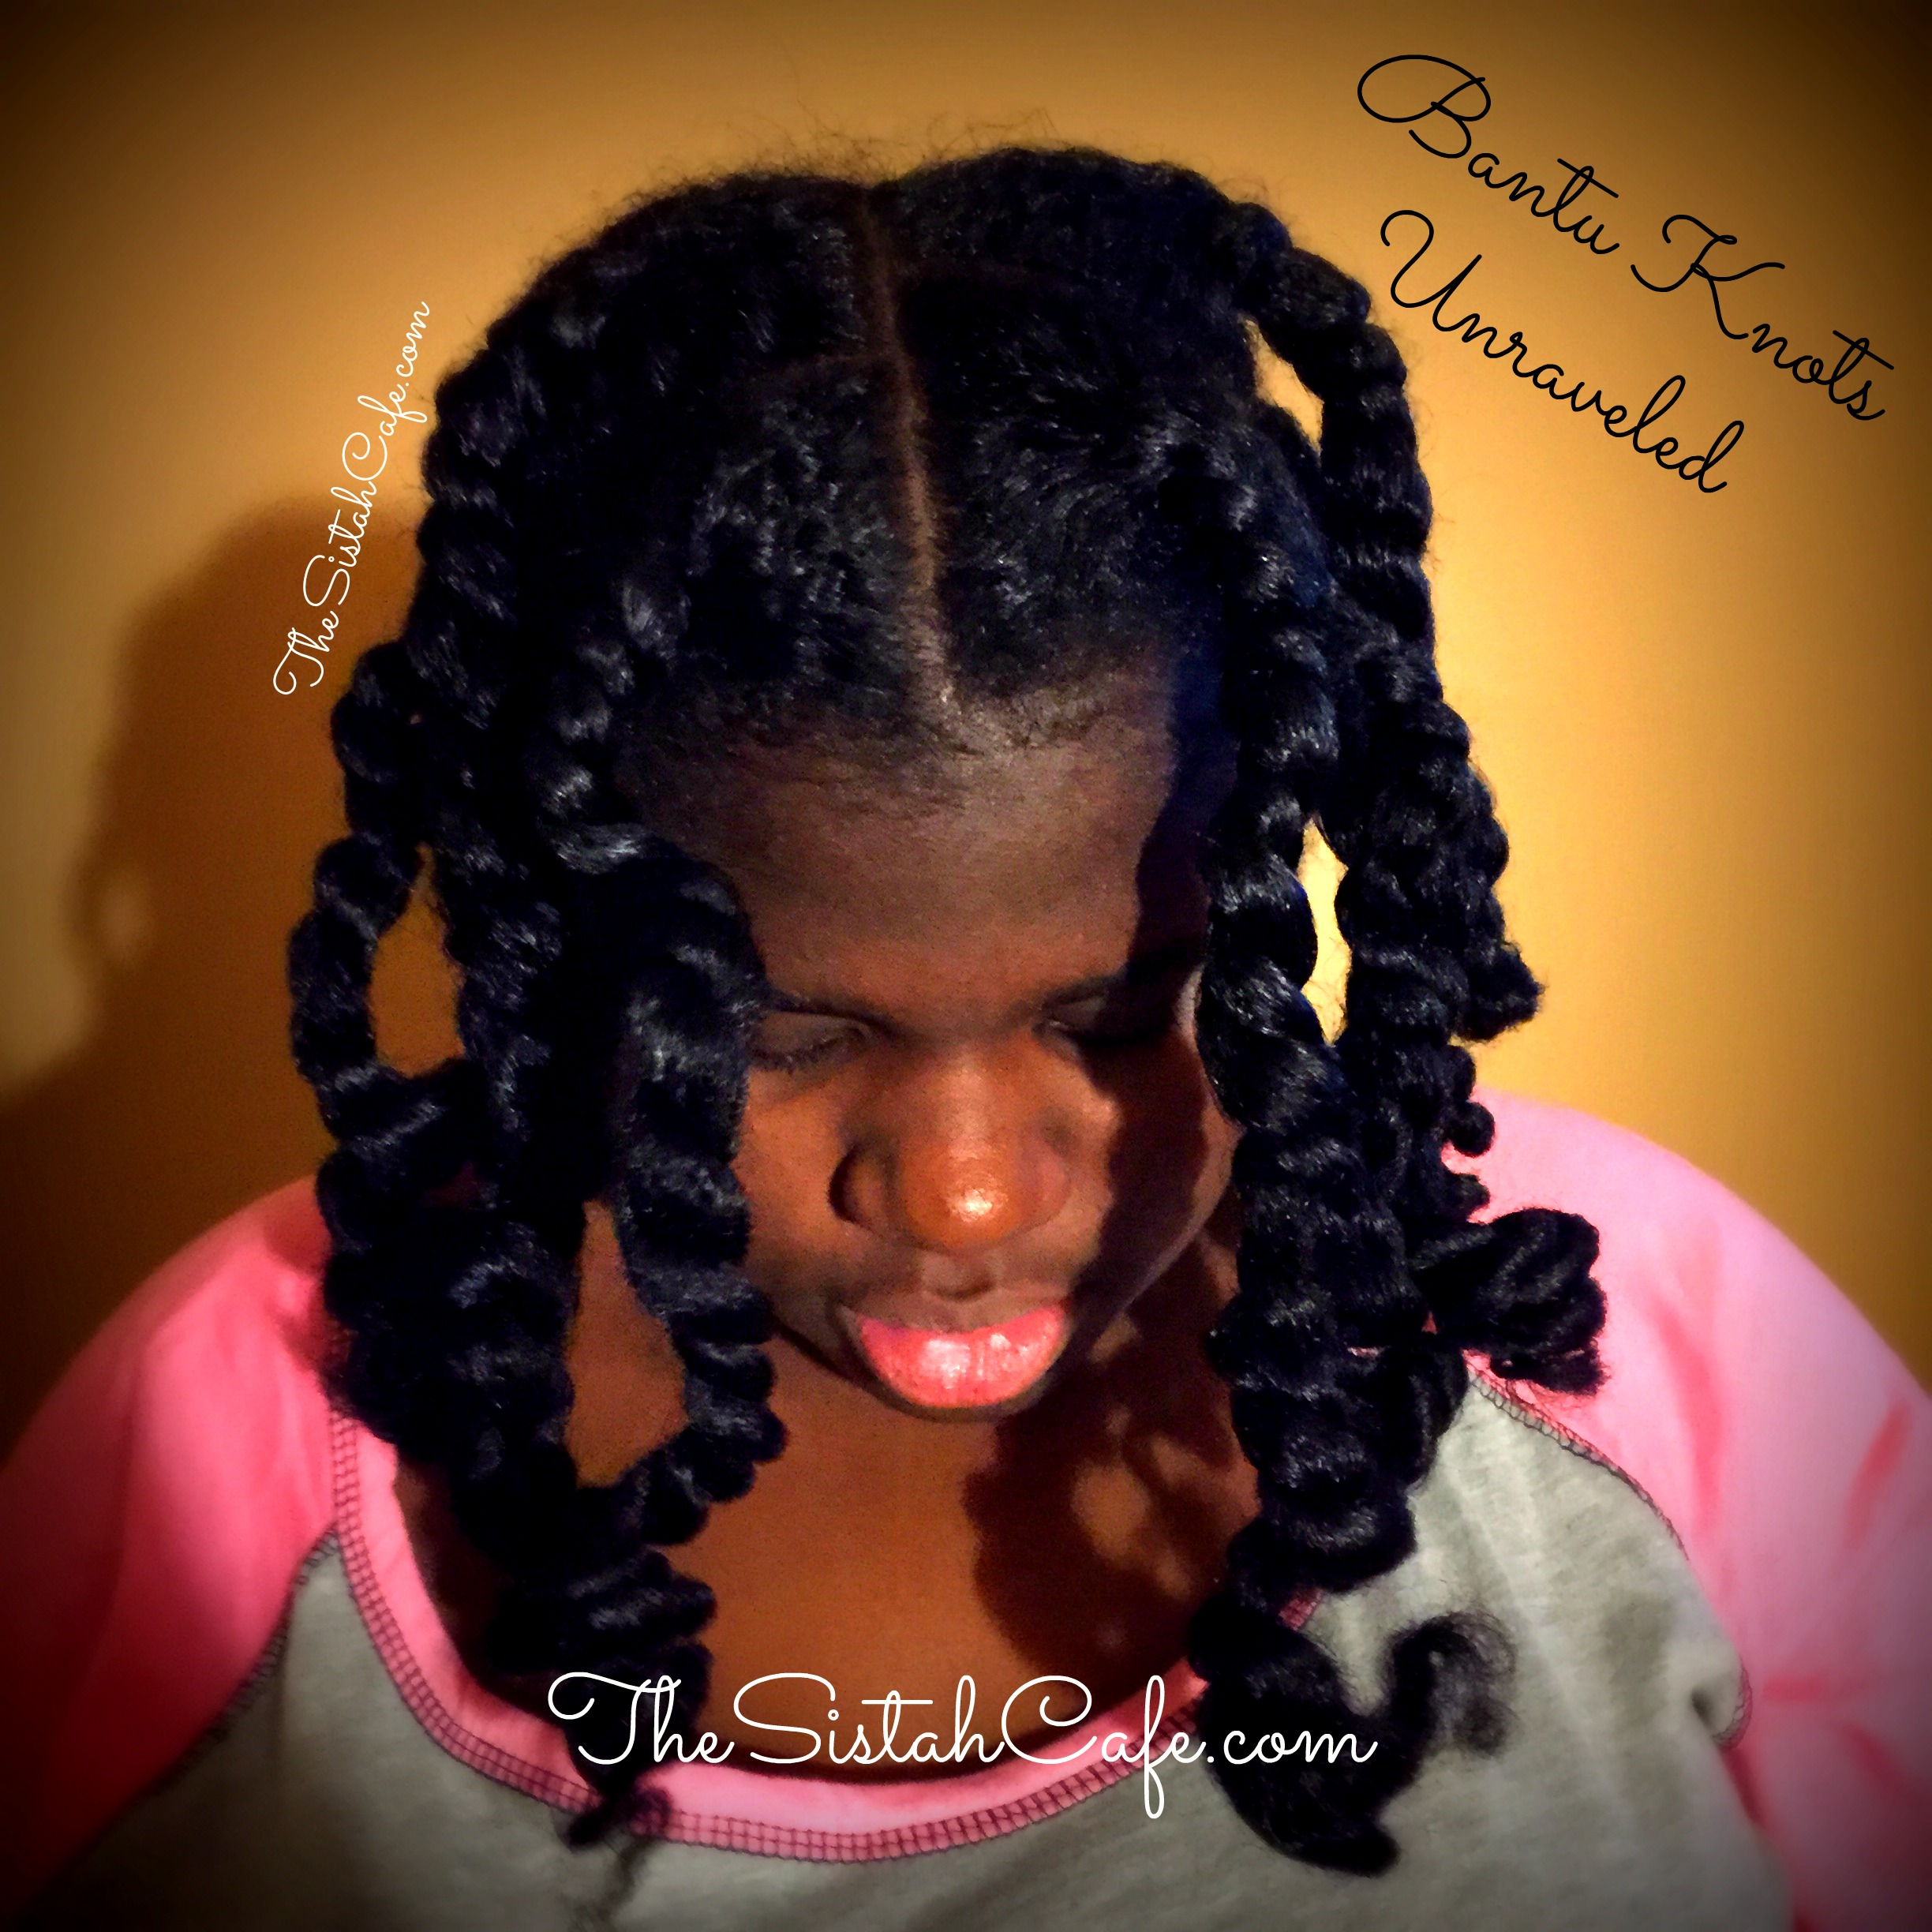 How To Stretch Natural Hair Using Bantu Knots The Sistah Cafe